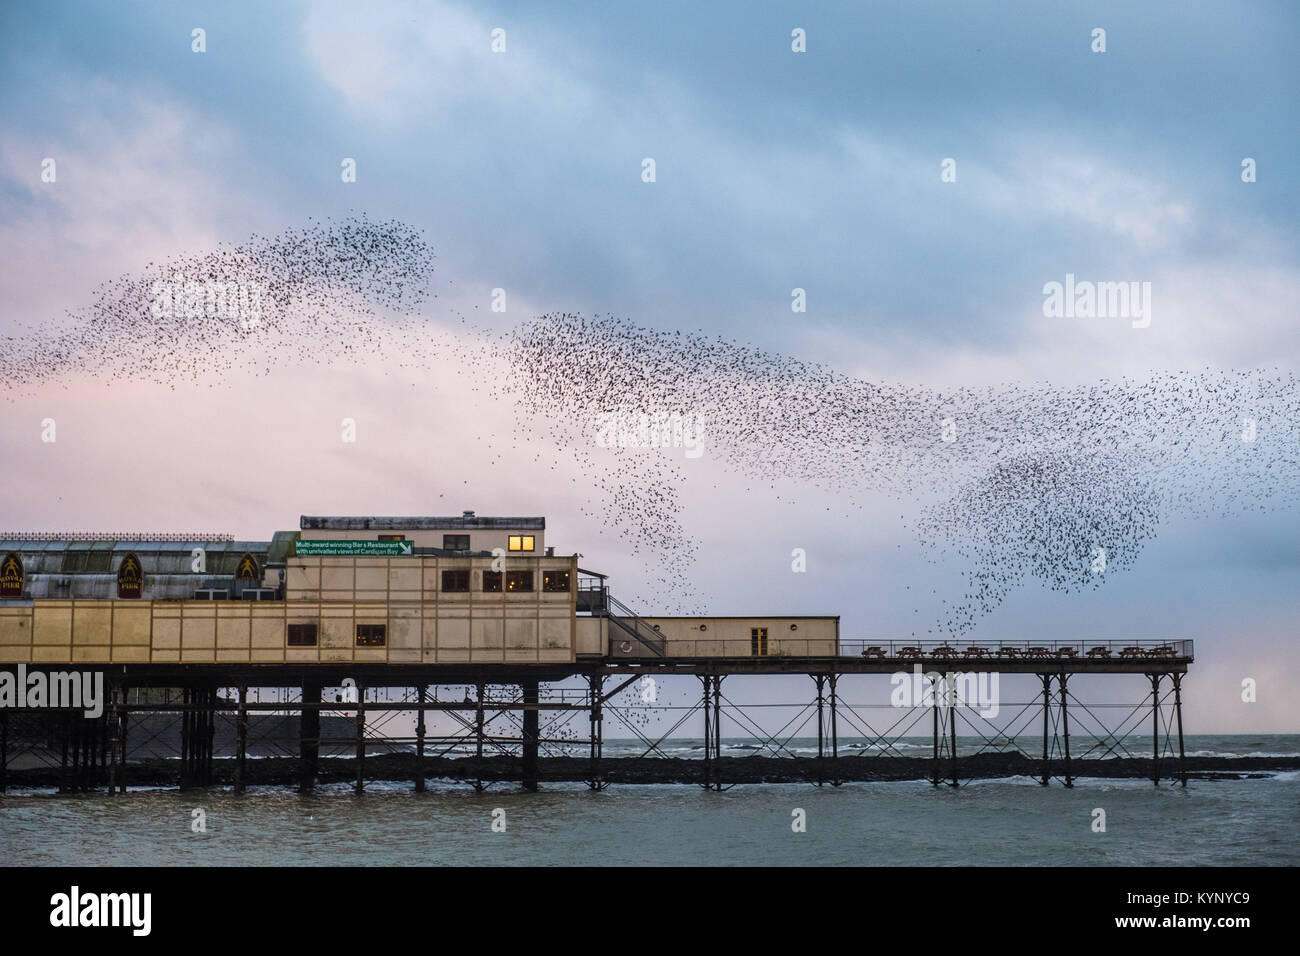 Aberystwyth Wales UK, Monday 15 January 2018 UK Weather: In the silver grey light of the January dusk in Aberystwyth - Stock Image